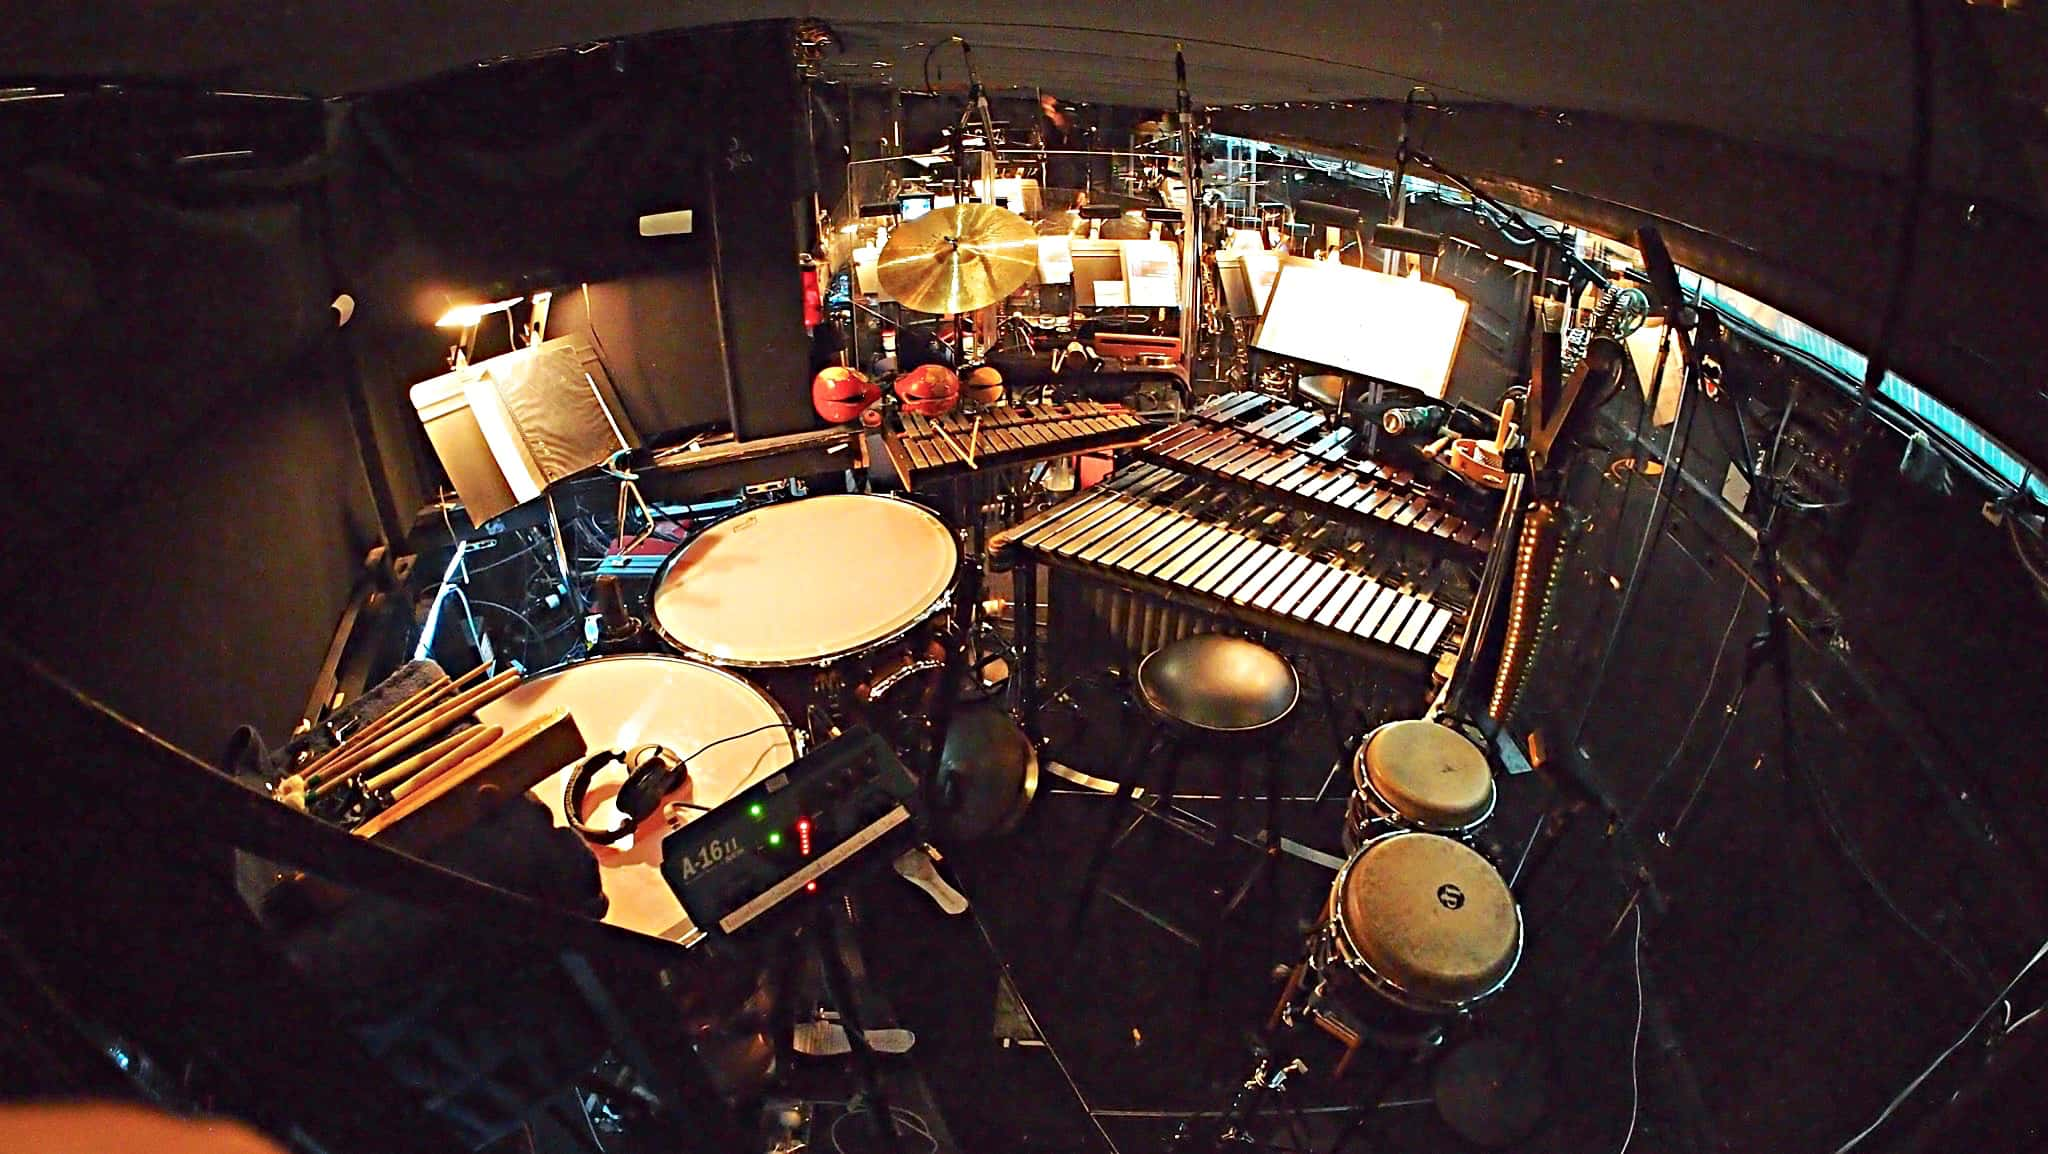 Paul Hansen's percussion setup for Pajama Game at the 5th Avenue Theatre in Seattle, Washington.